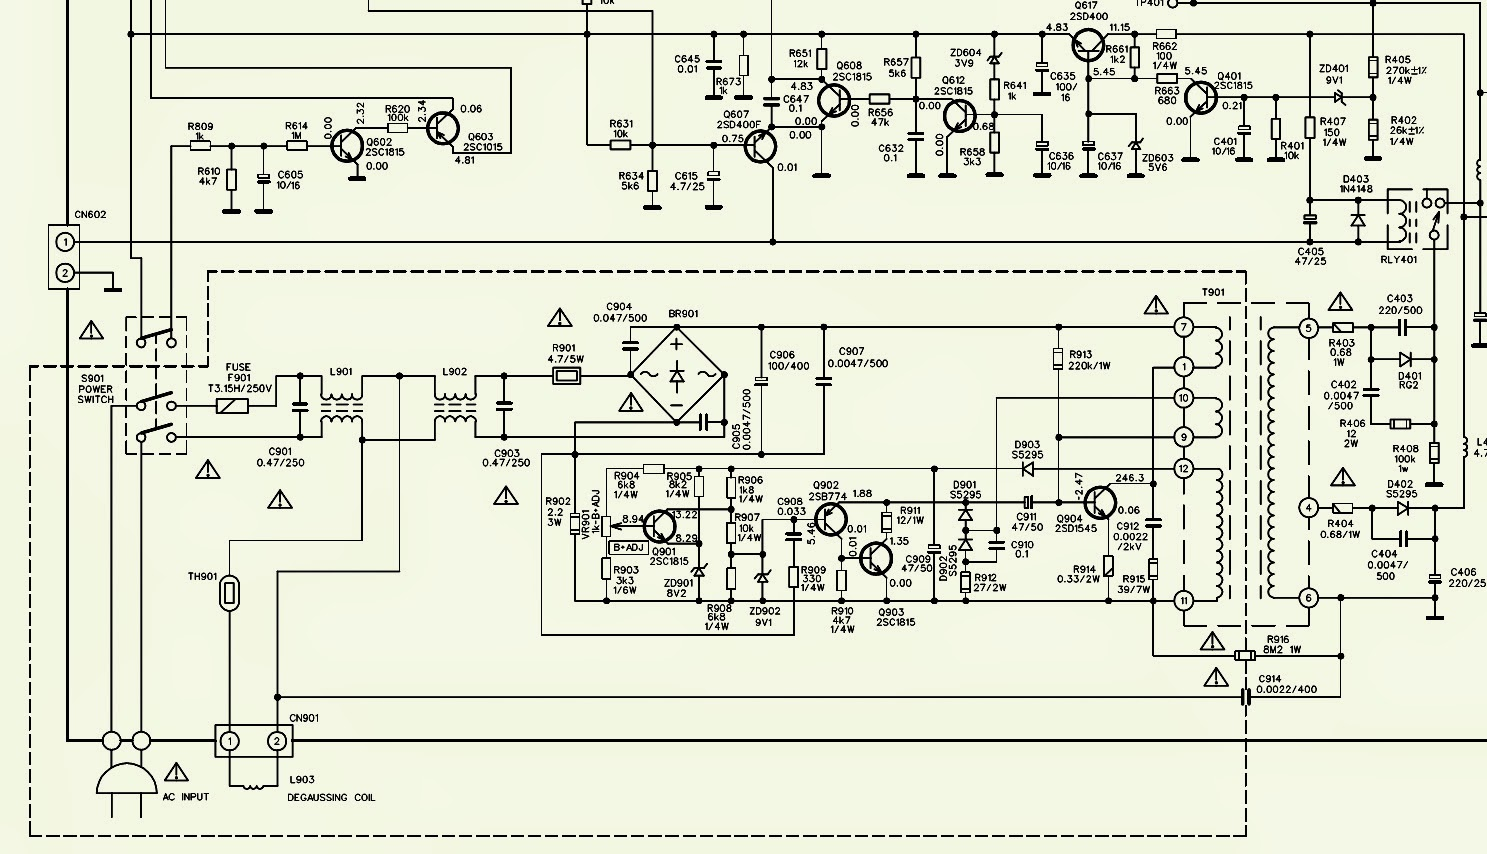 tv ph19d led tv power supply smps schematic circuit diagram 6000 power supply smps schematic circuit digram electro help [ 1487 x 854 Pixel ]